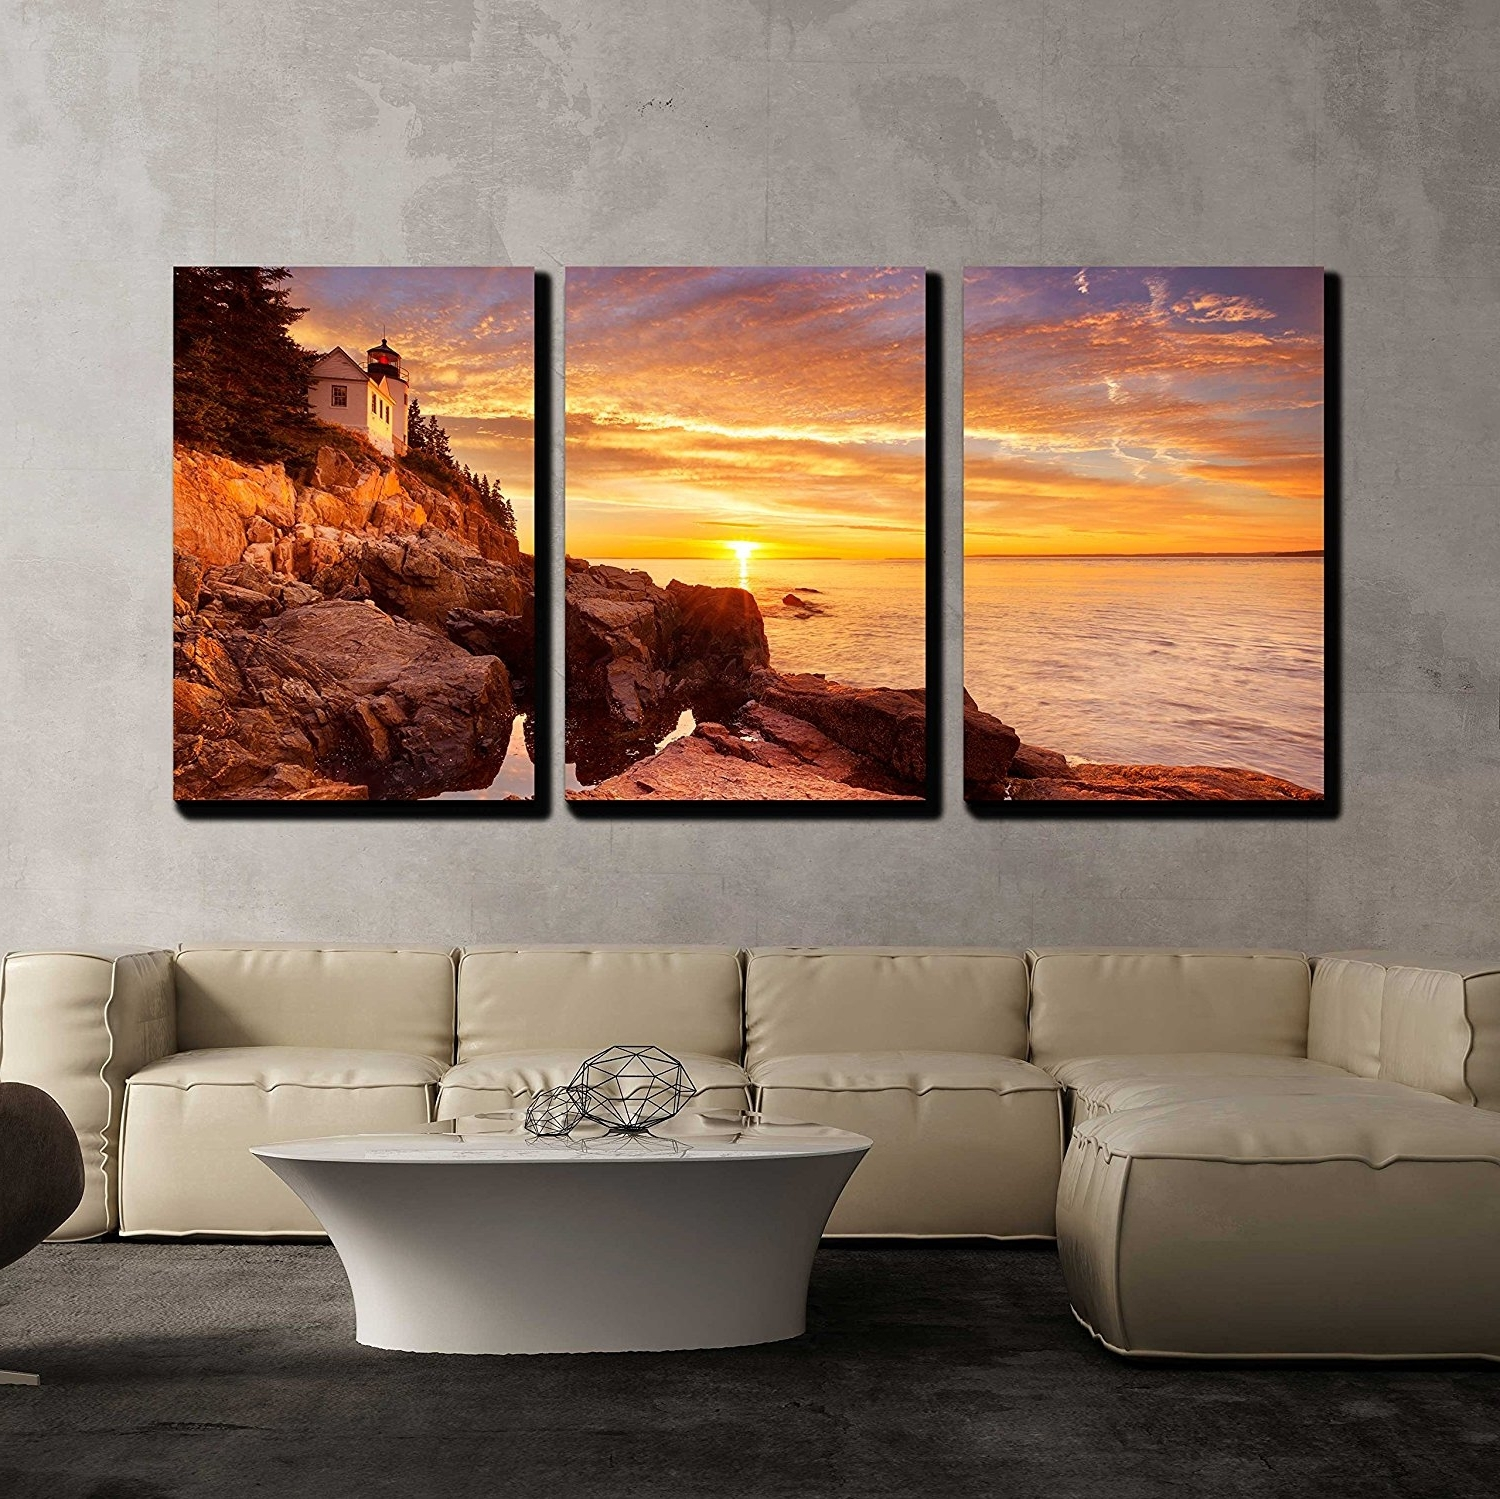 Wall26 – Art Prints – Framed Art – Canvas Prints – Greeting Within Most Recent Bass Framed Art Prints (View 15 of 15)